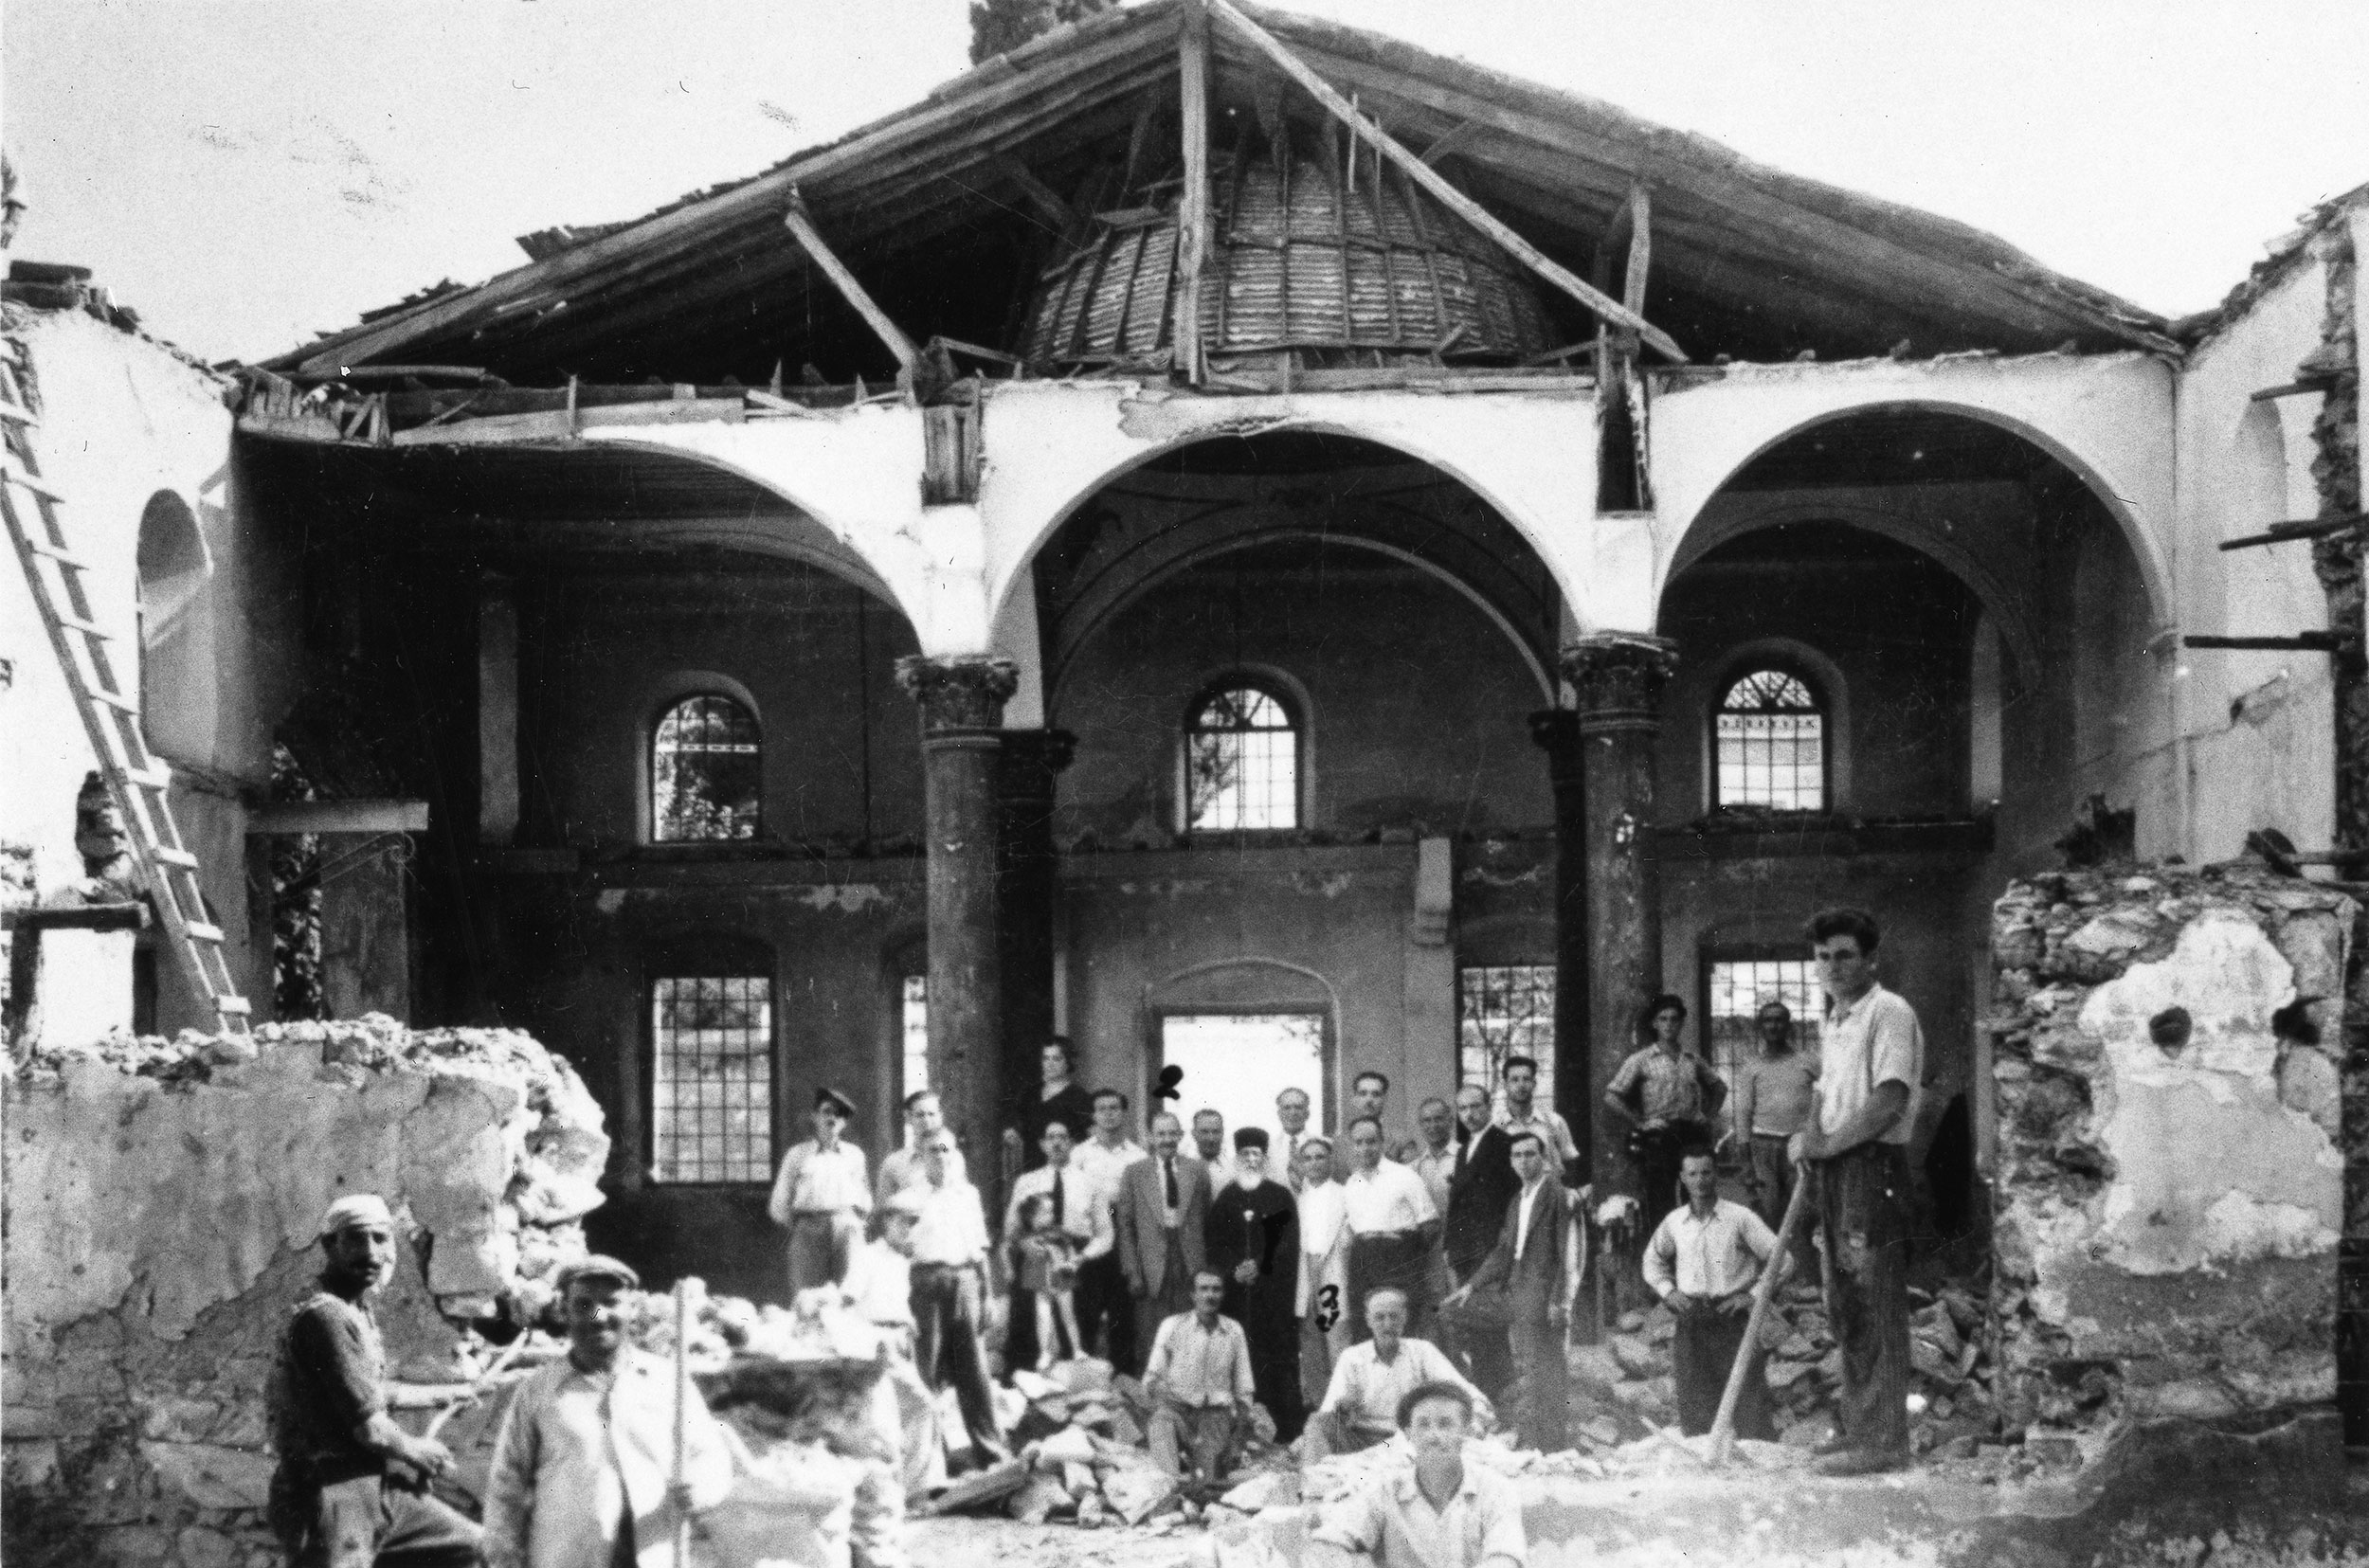 The Holy Synagogue of Volos after it was destroyed by the Germans in 1944 Photo evraiko mouseio elladas